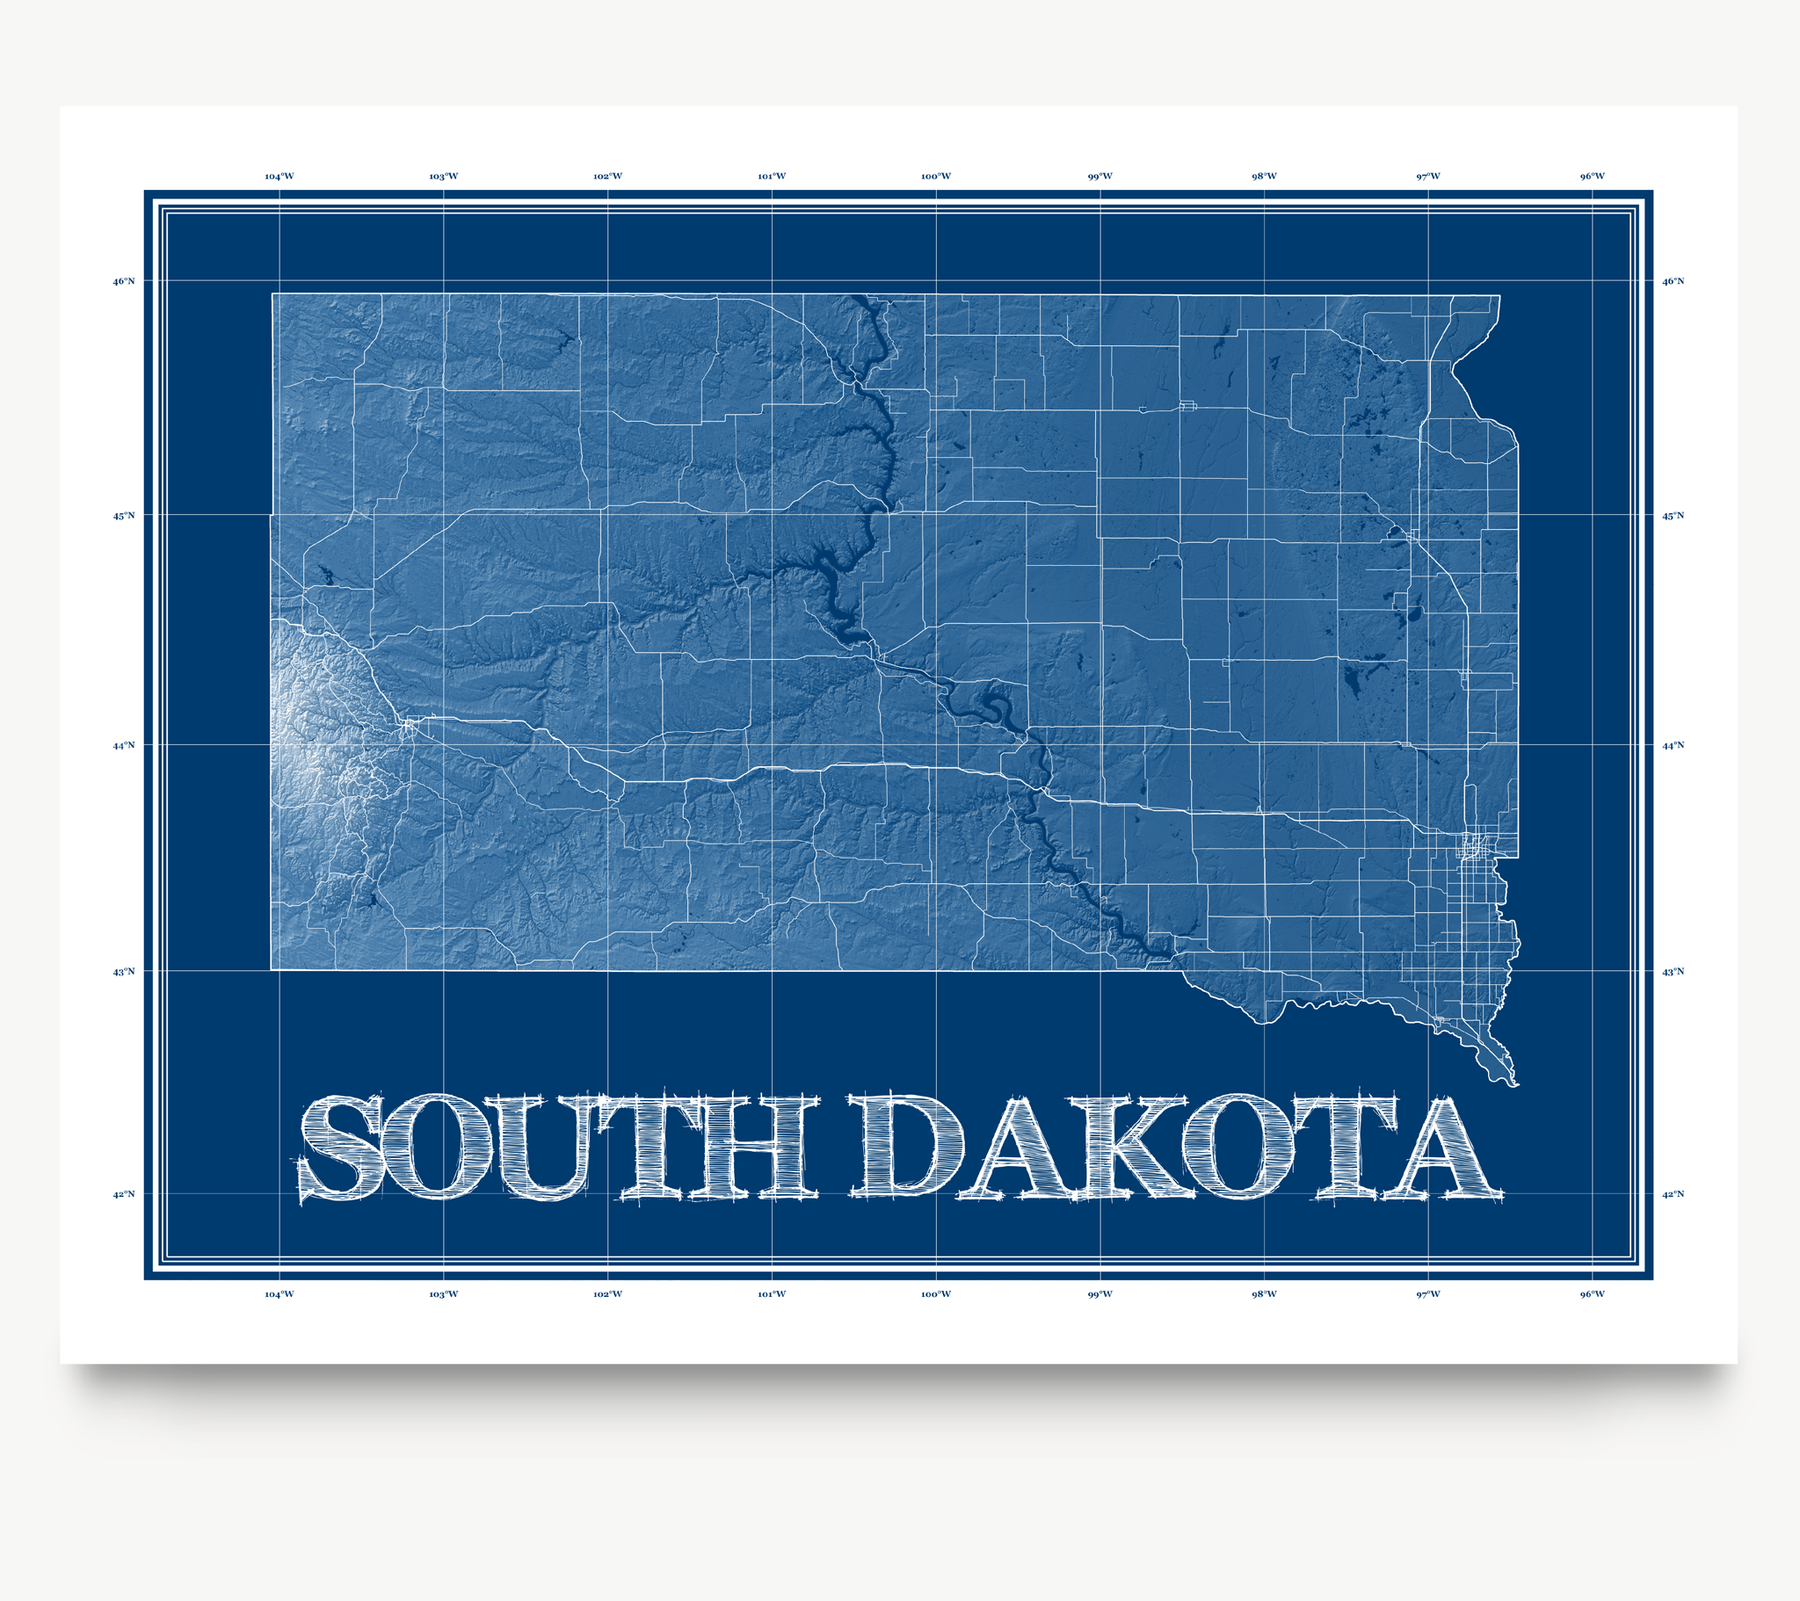 South Dakota state blueprint map art print designed by Maps As Art.